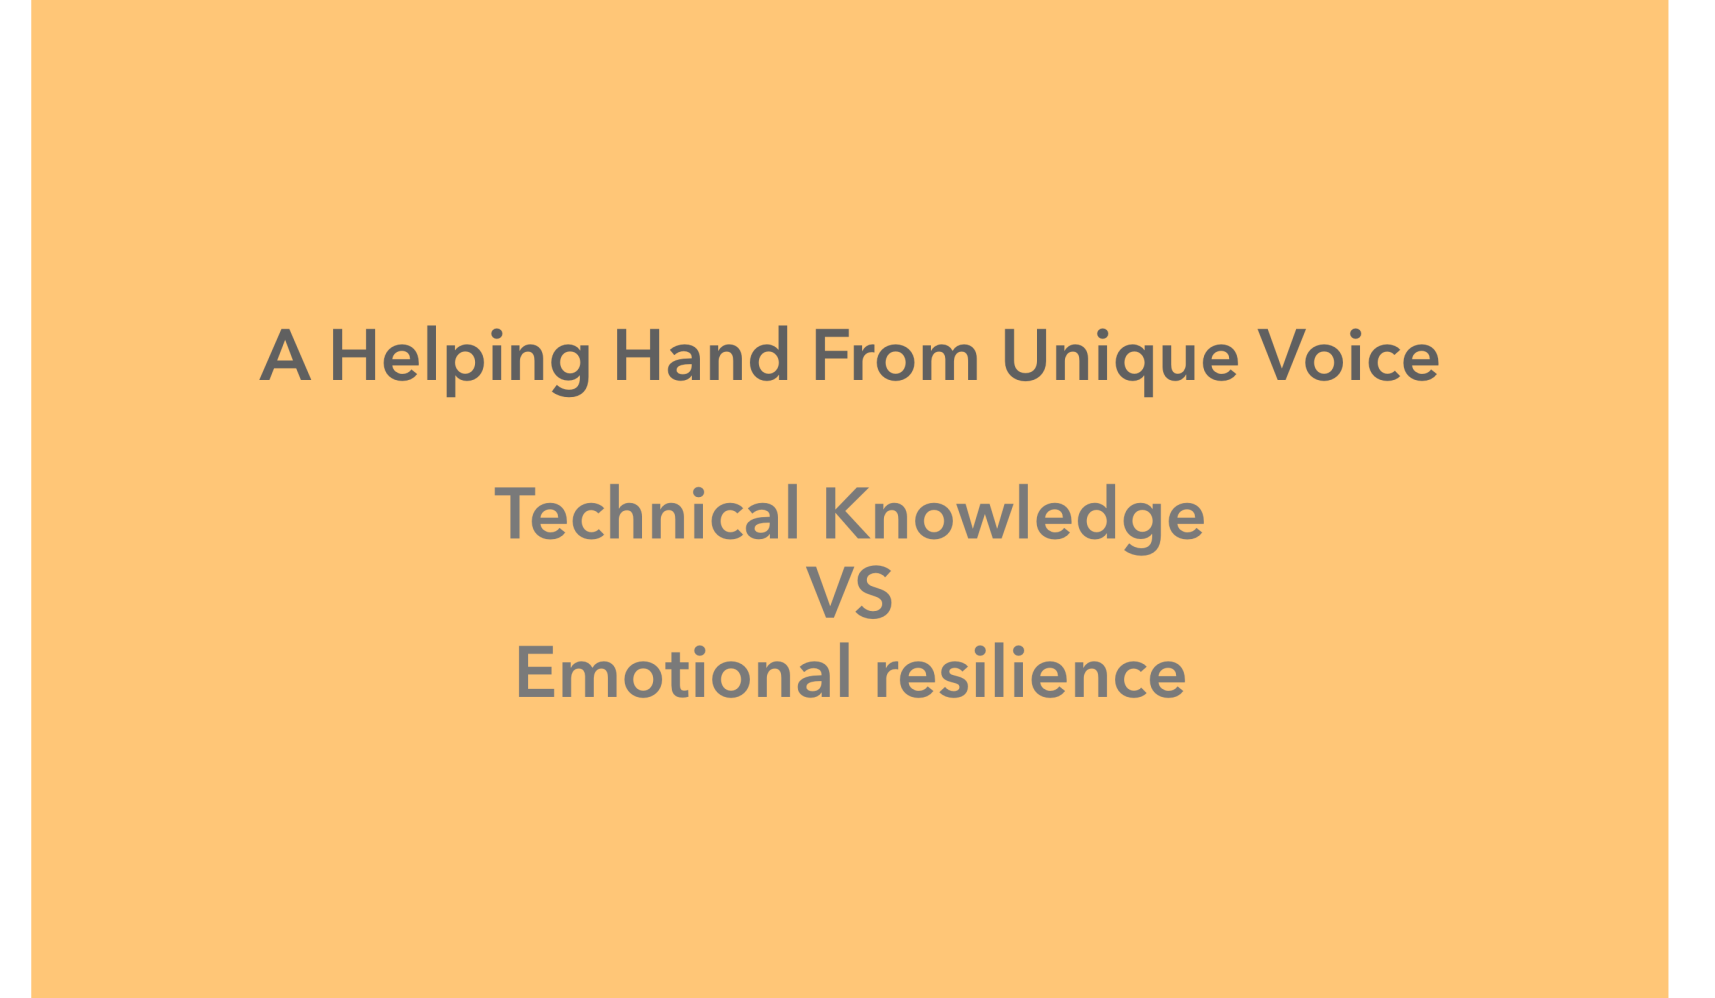 Technical Knowledge Vs Emotional Resilience